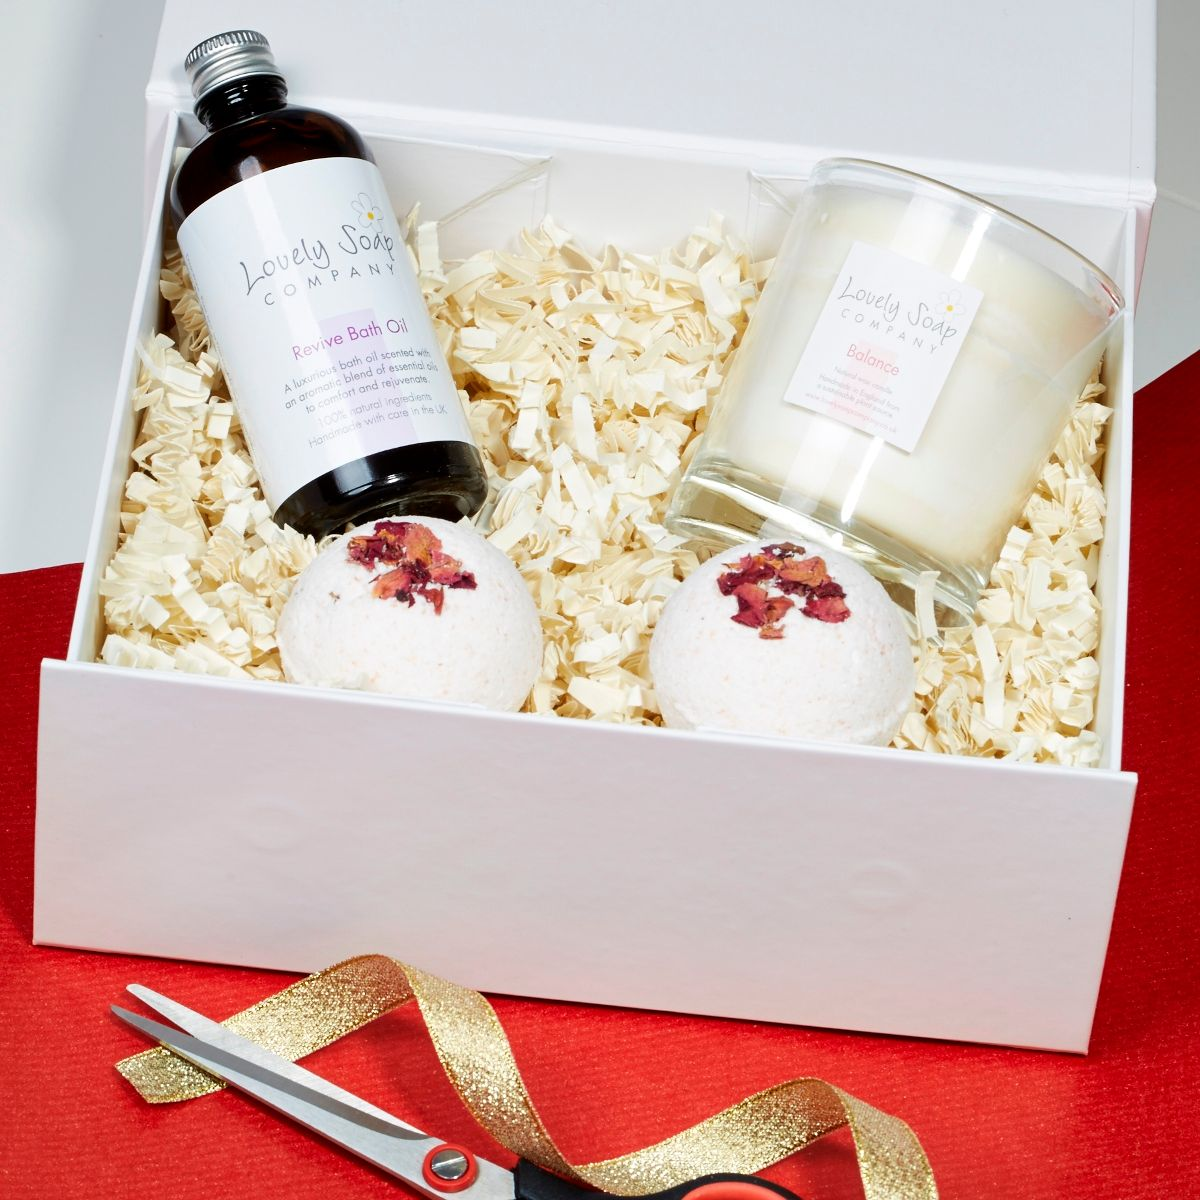 create your own reviving pamper hamper with Lovely Soap Company